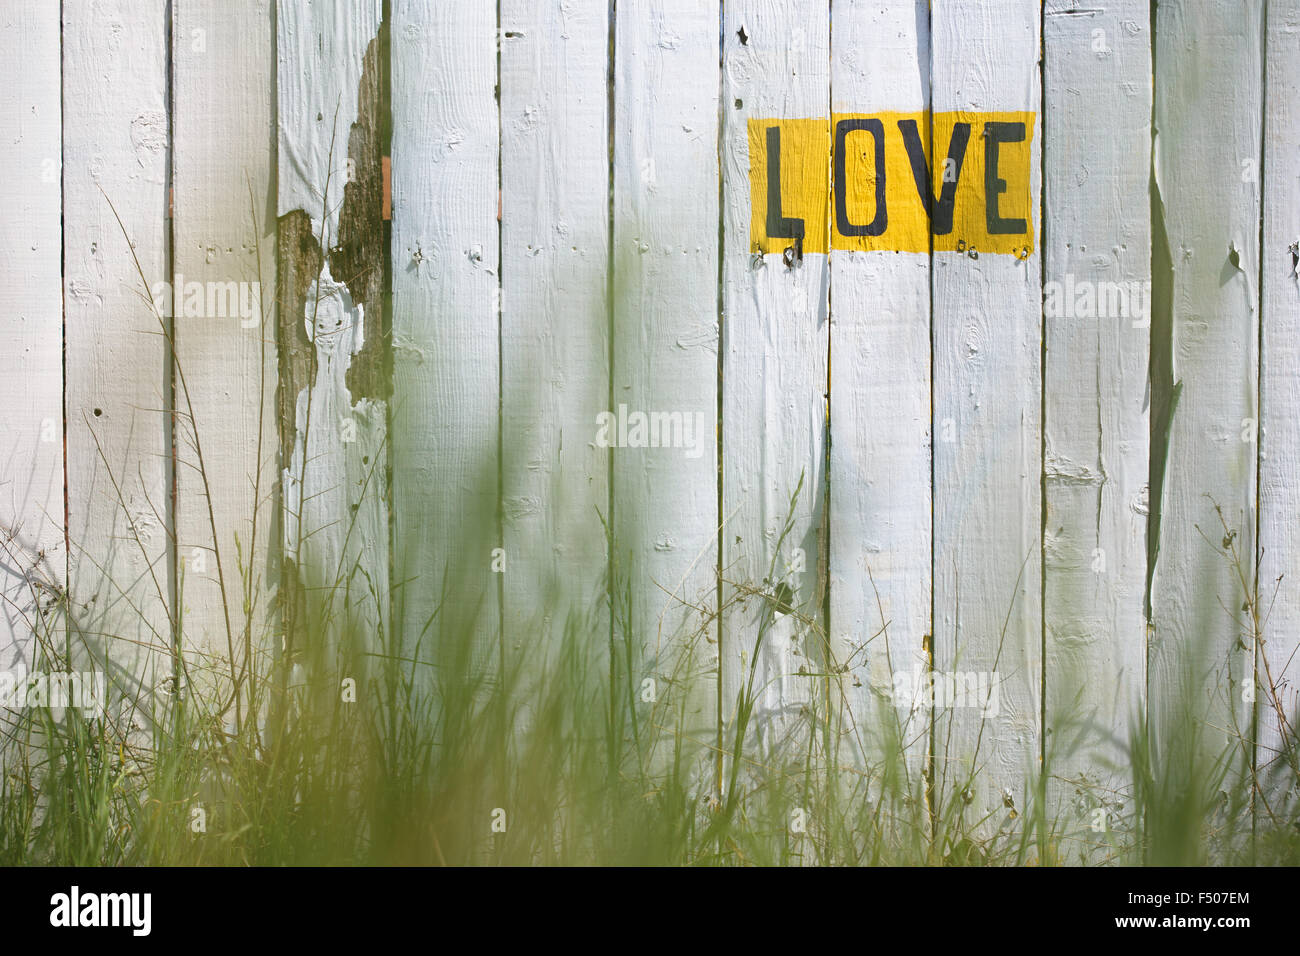 The word 'LOVE' written on a whitewashed fence - Stock Image